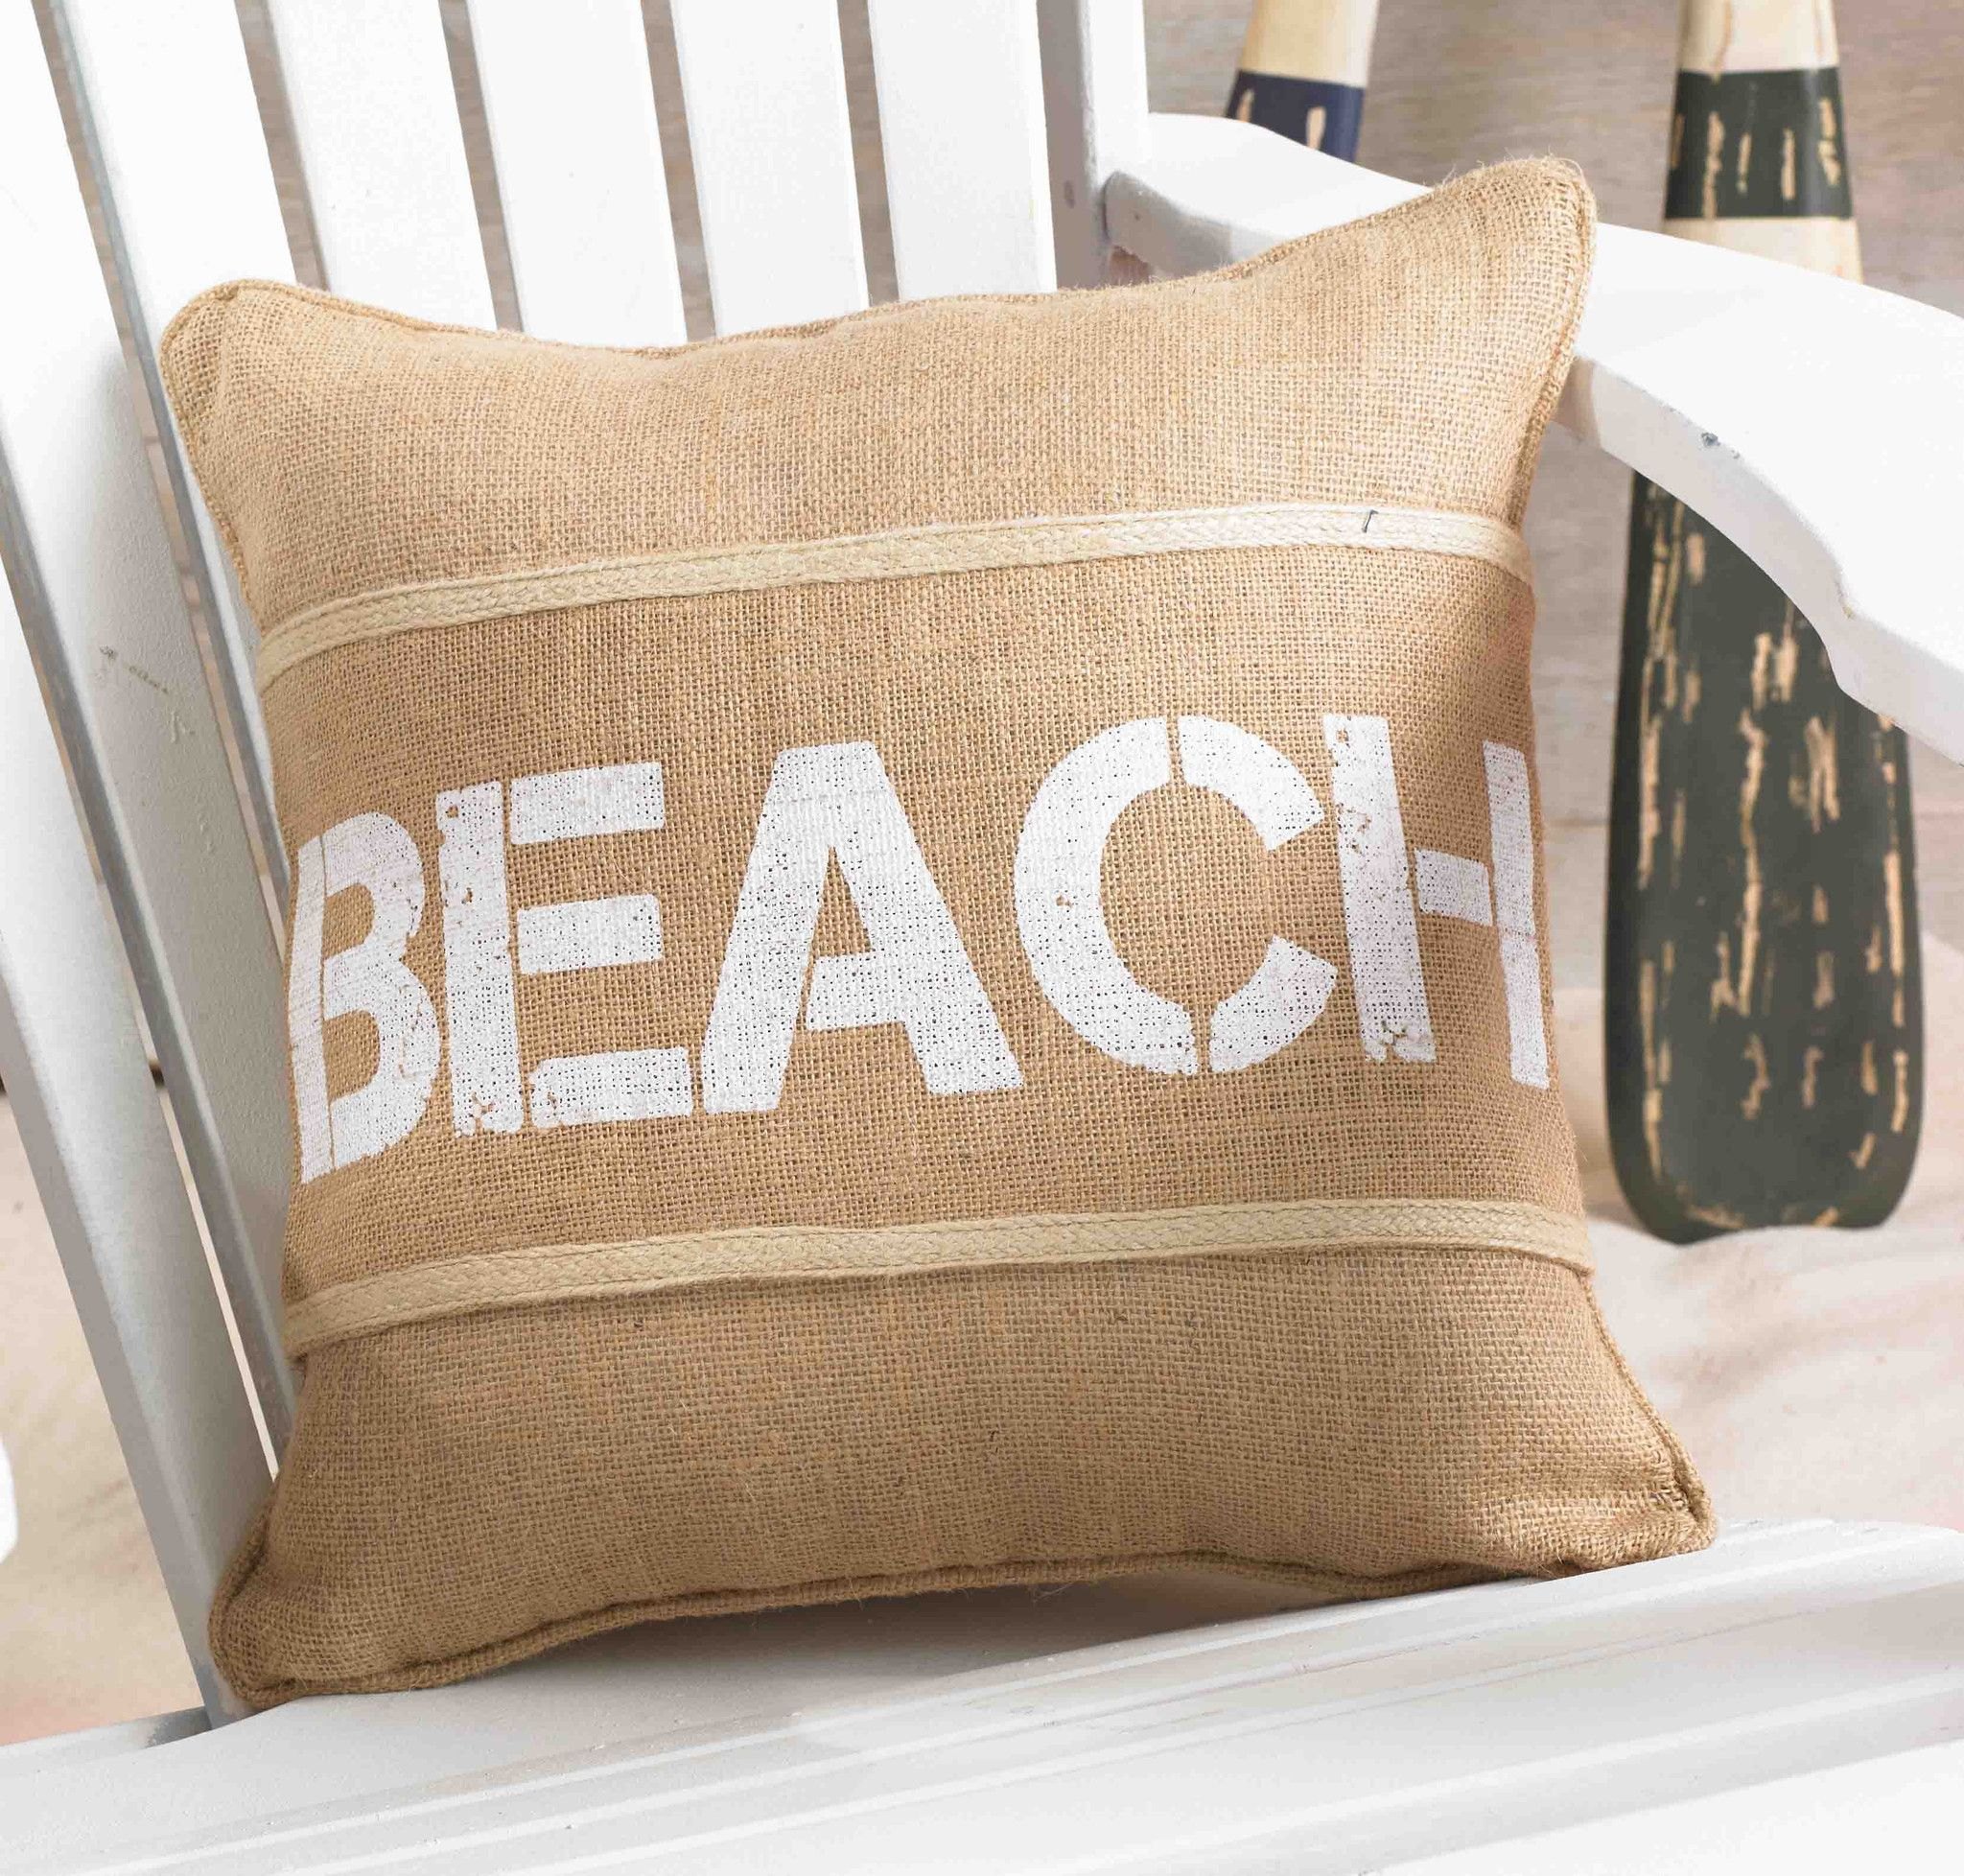 outdoor beach products sunbrella pillows pillow indoor boat shell style fabric conch cushions